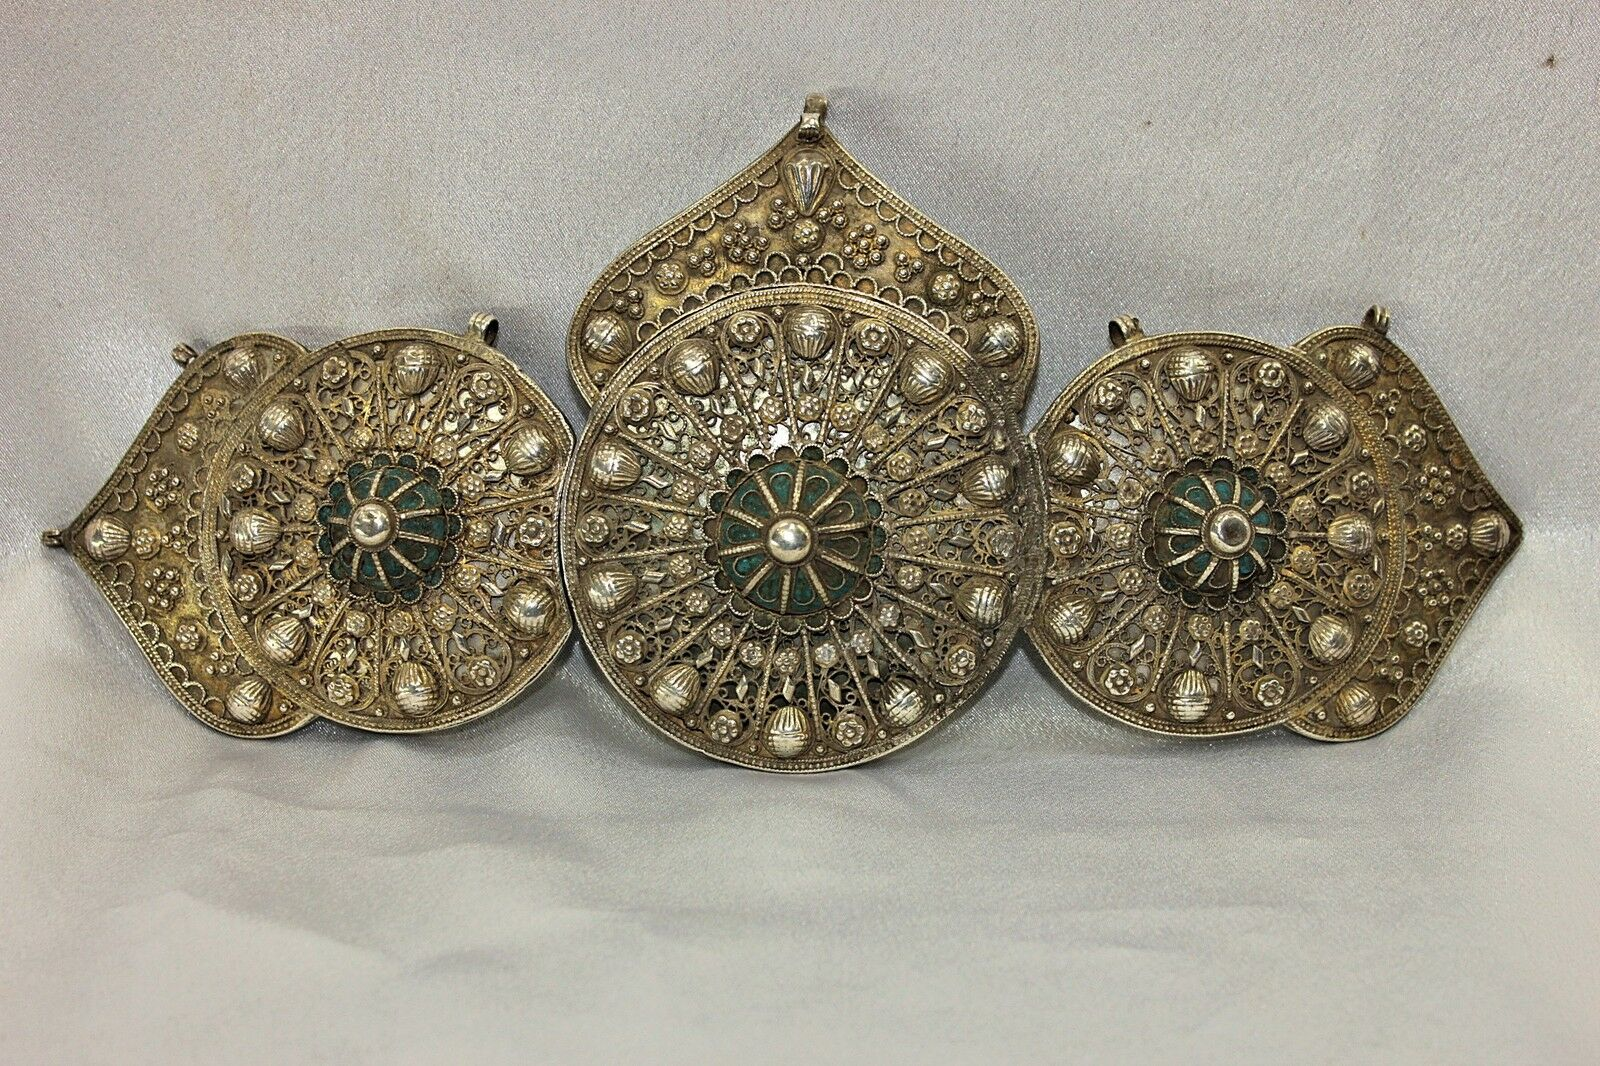 Antique Original Silver Enamel Big Ottoman Belt Buckle